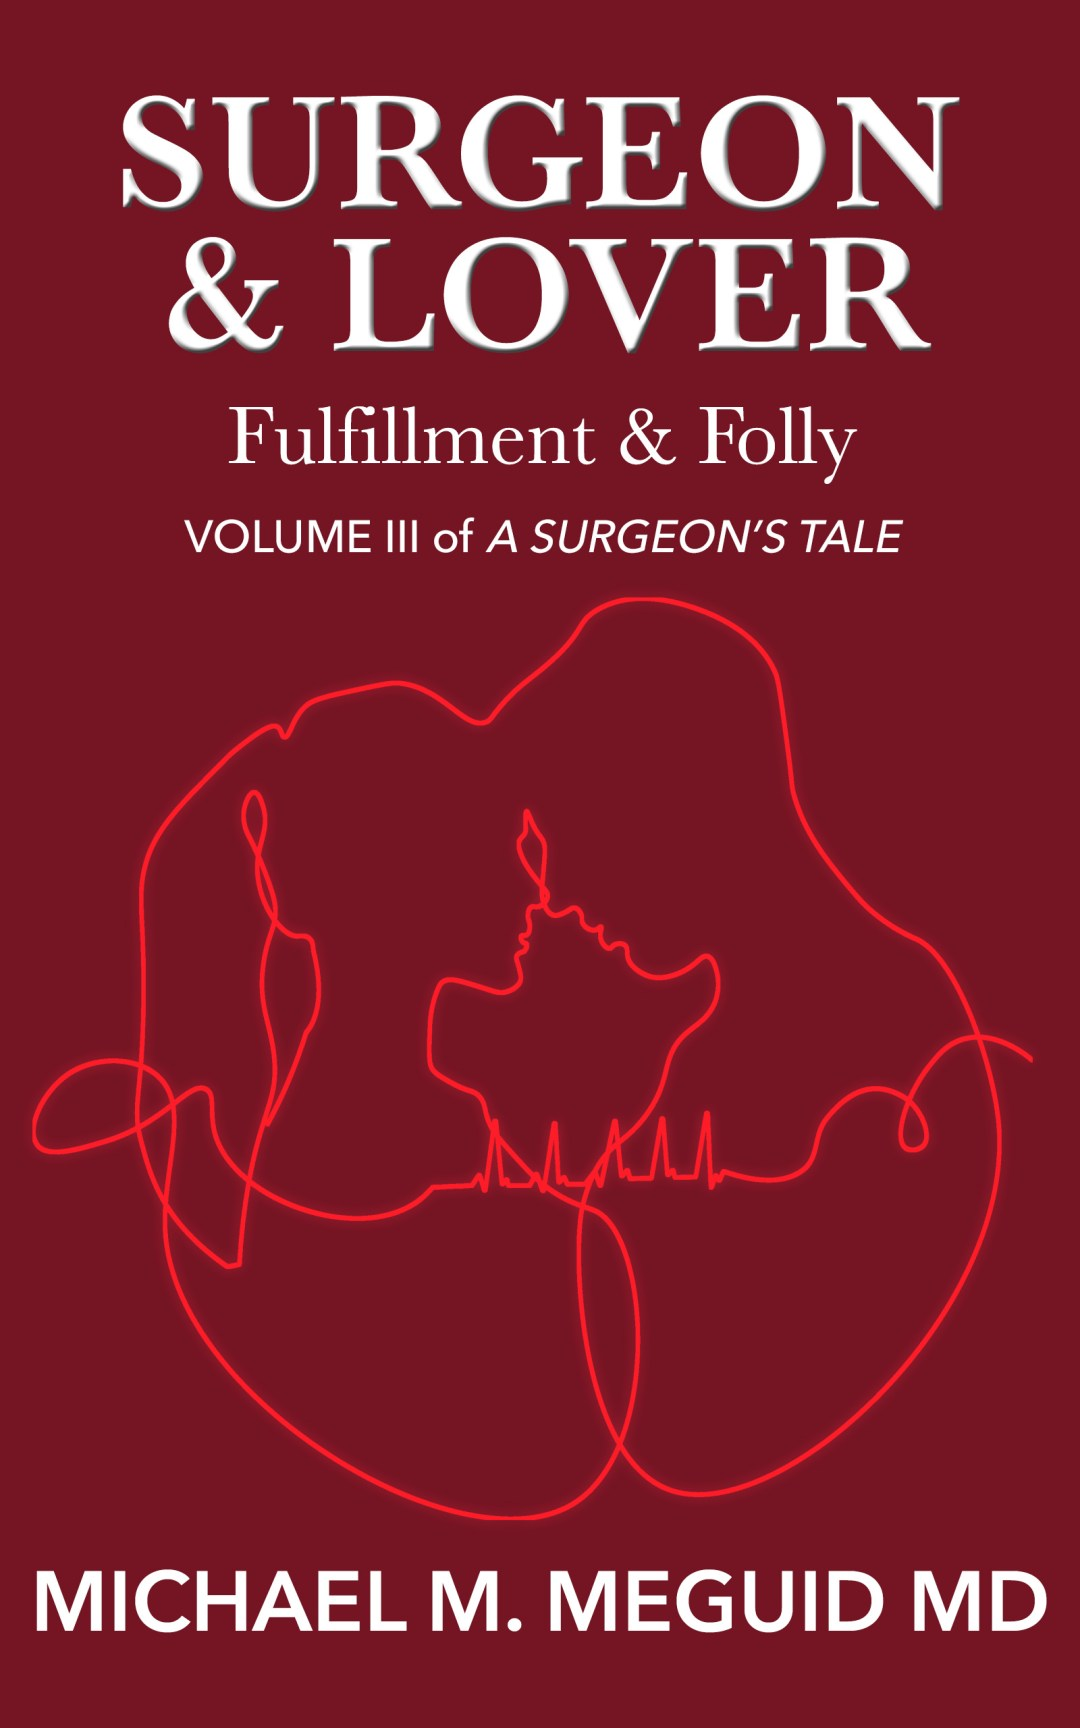 A Surgeons's Tale-A Journey through Humanity